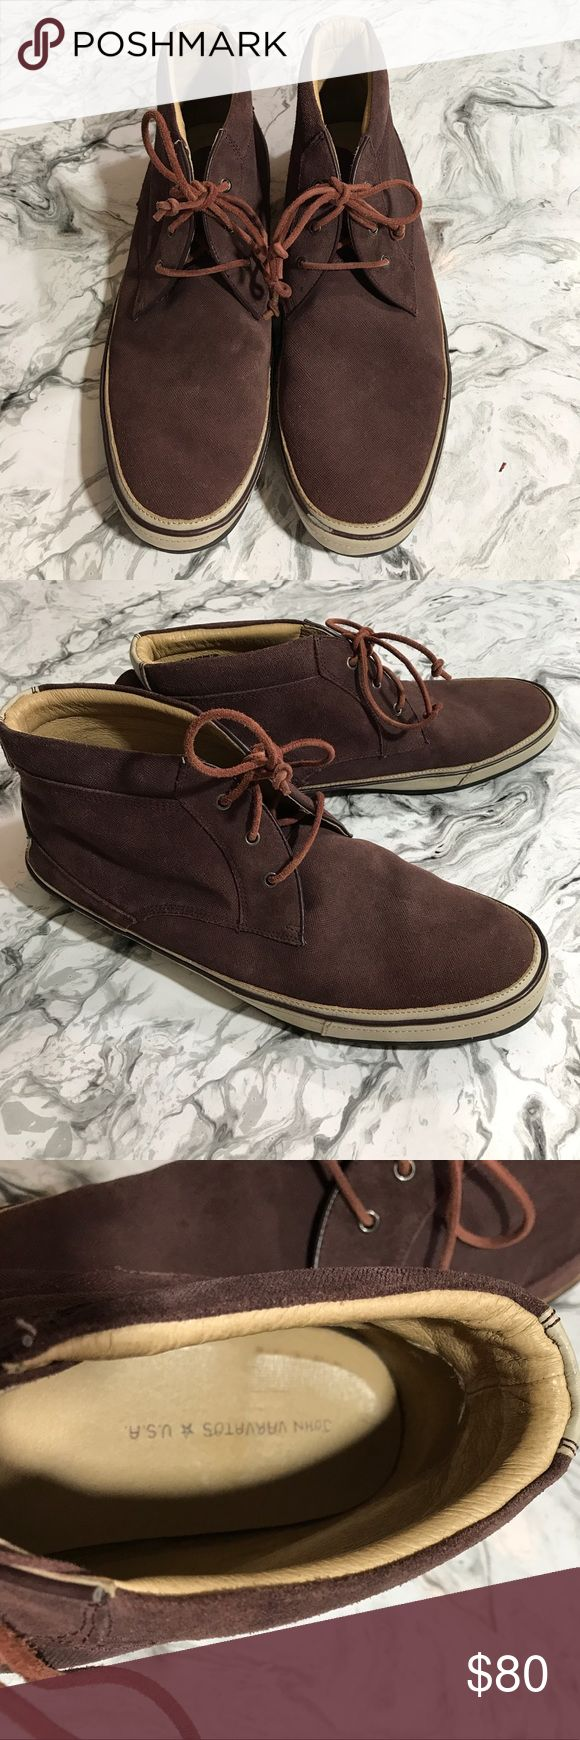 John Varvatos Star USA Redding Chukka Boots 13 M John Varvatos Star USA Redding Chukka Boots. Size 13 M. Burnished calfskin suede with contrasting leather sidewall. Burgundy/brown color. Rugged tire-tread outside. Very good used condition - few scuffs, see photos for details. John Varvatos Shoes Chukka Boots